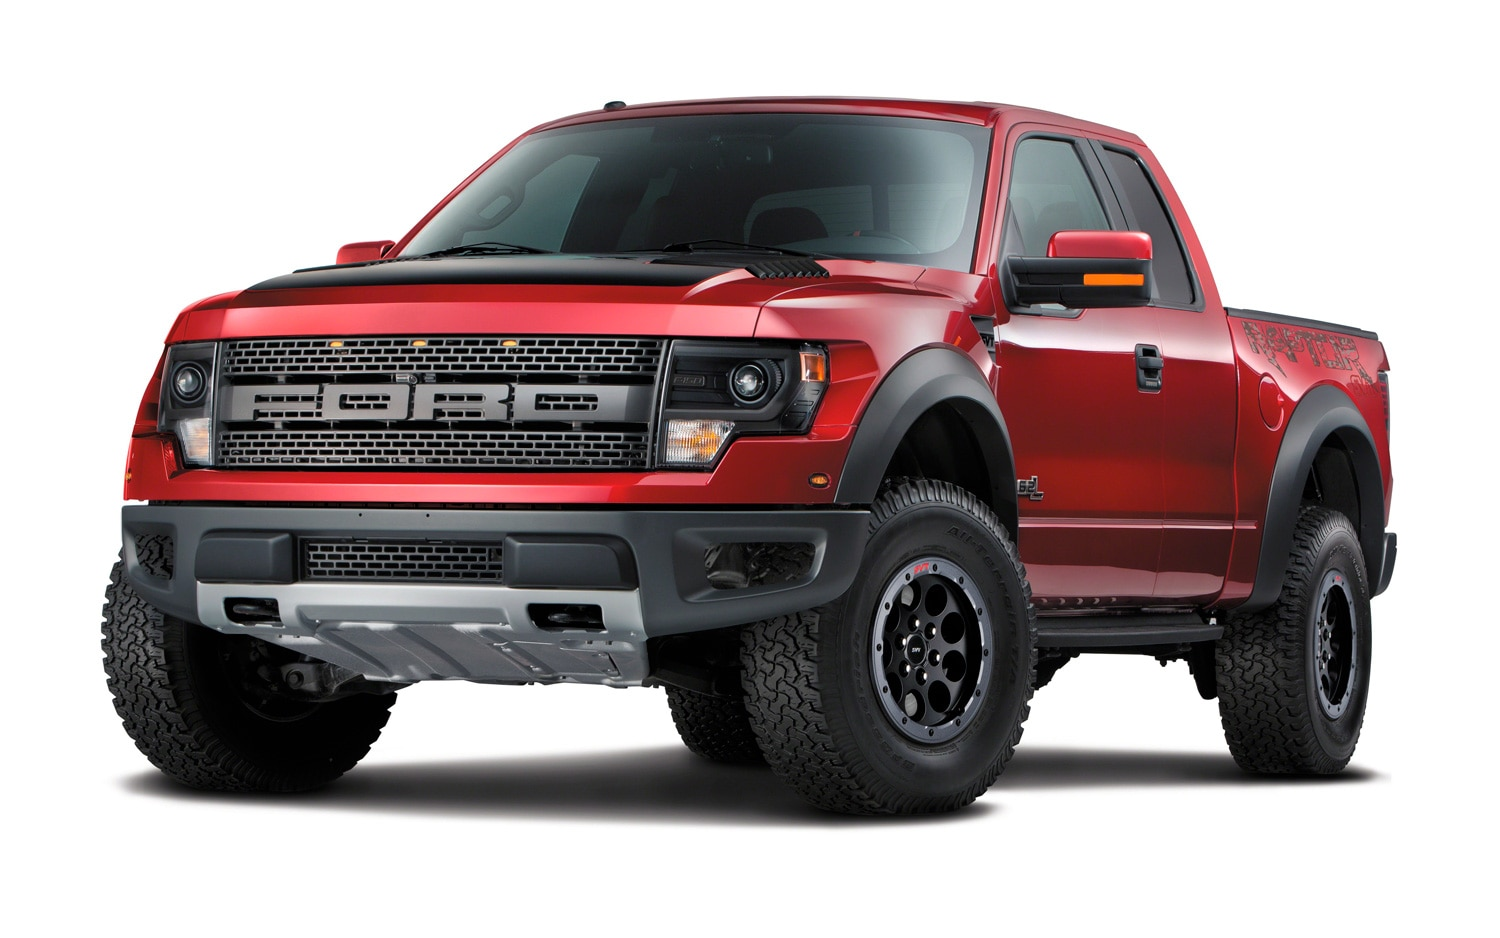 2014 Ford F150 SVT Raptor Special Edition Front Three Quarters View1